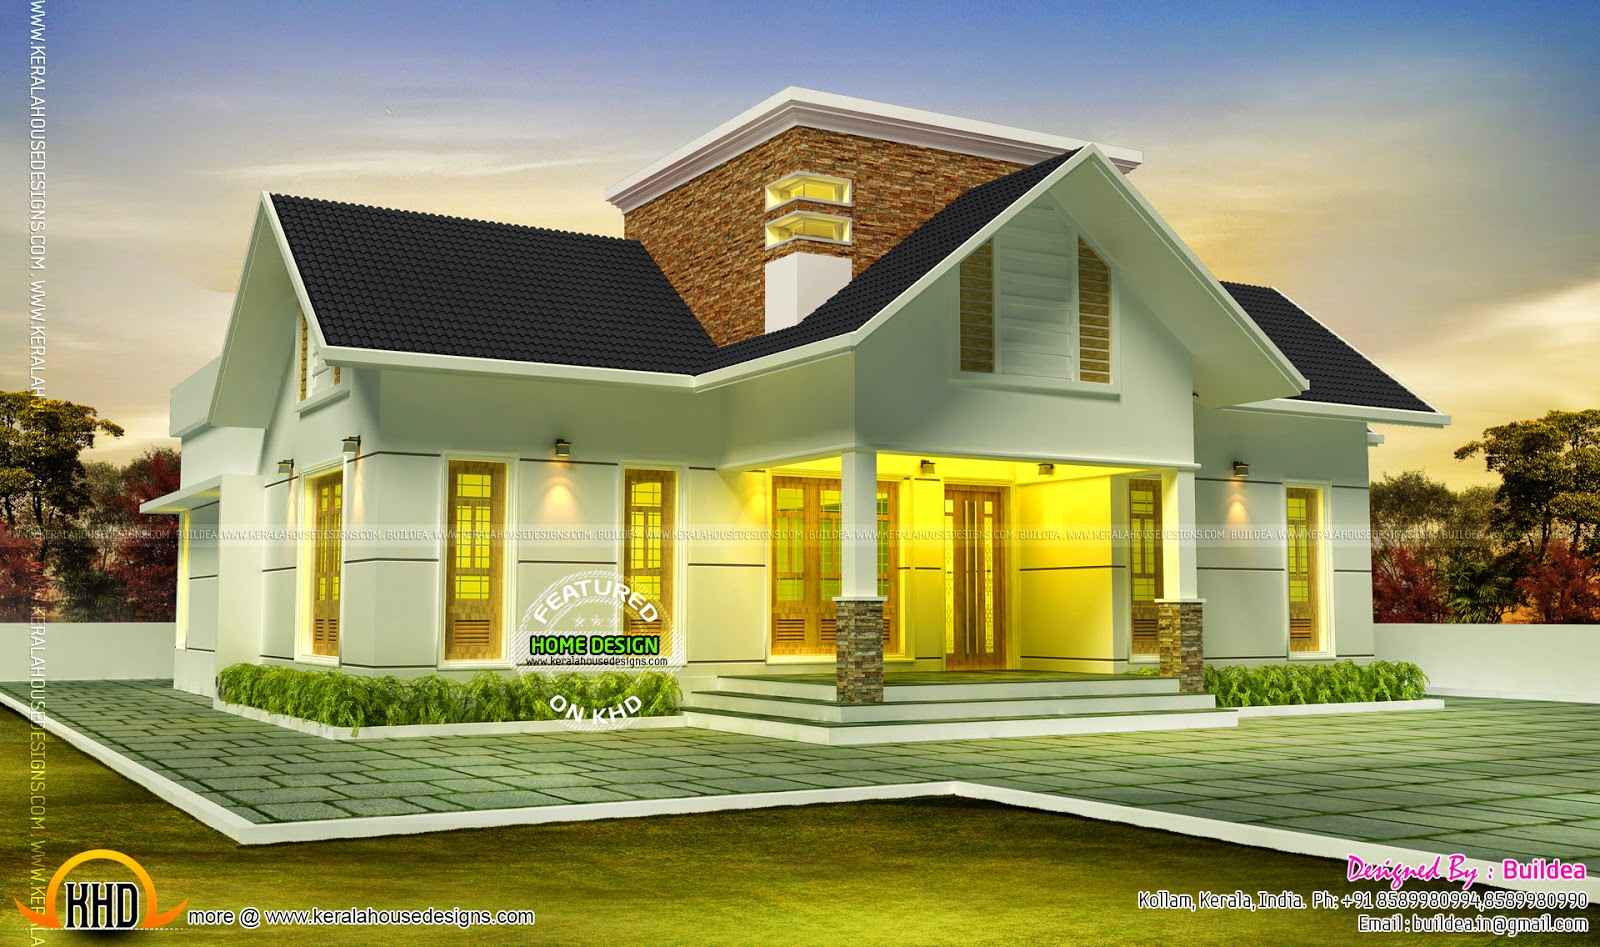 Very beautiful house kerala home design and floor plans for Beautiful architecture houses